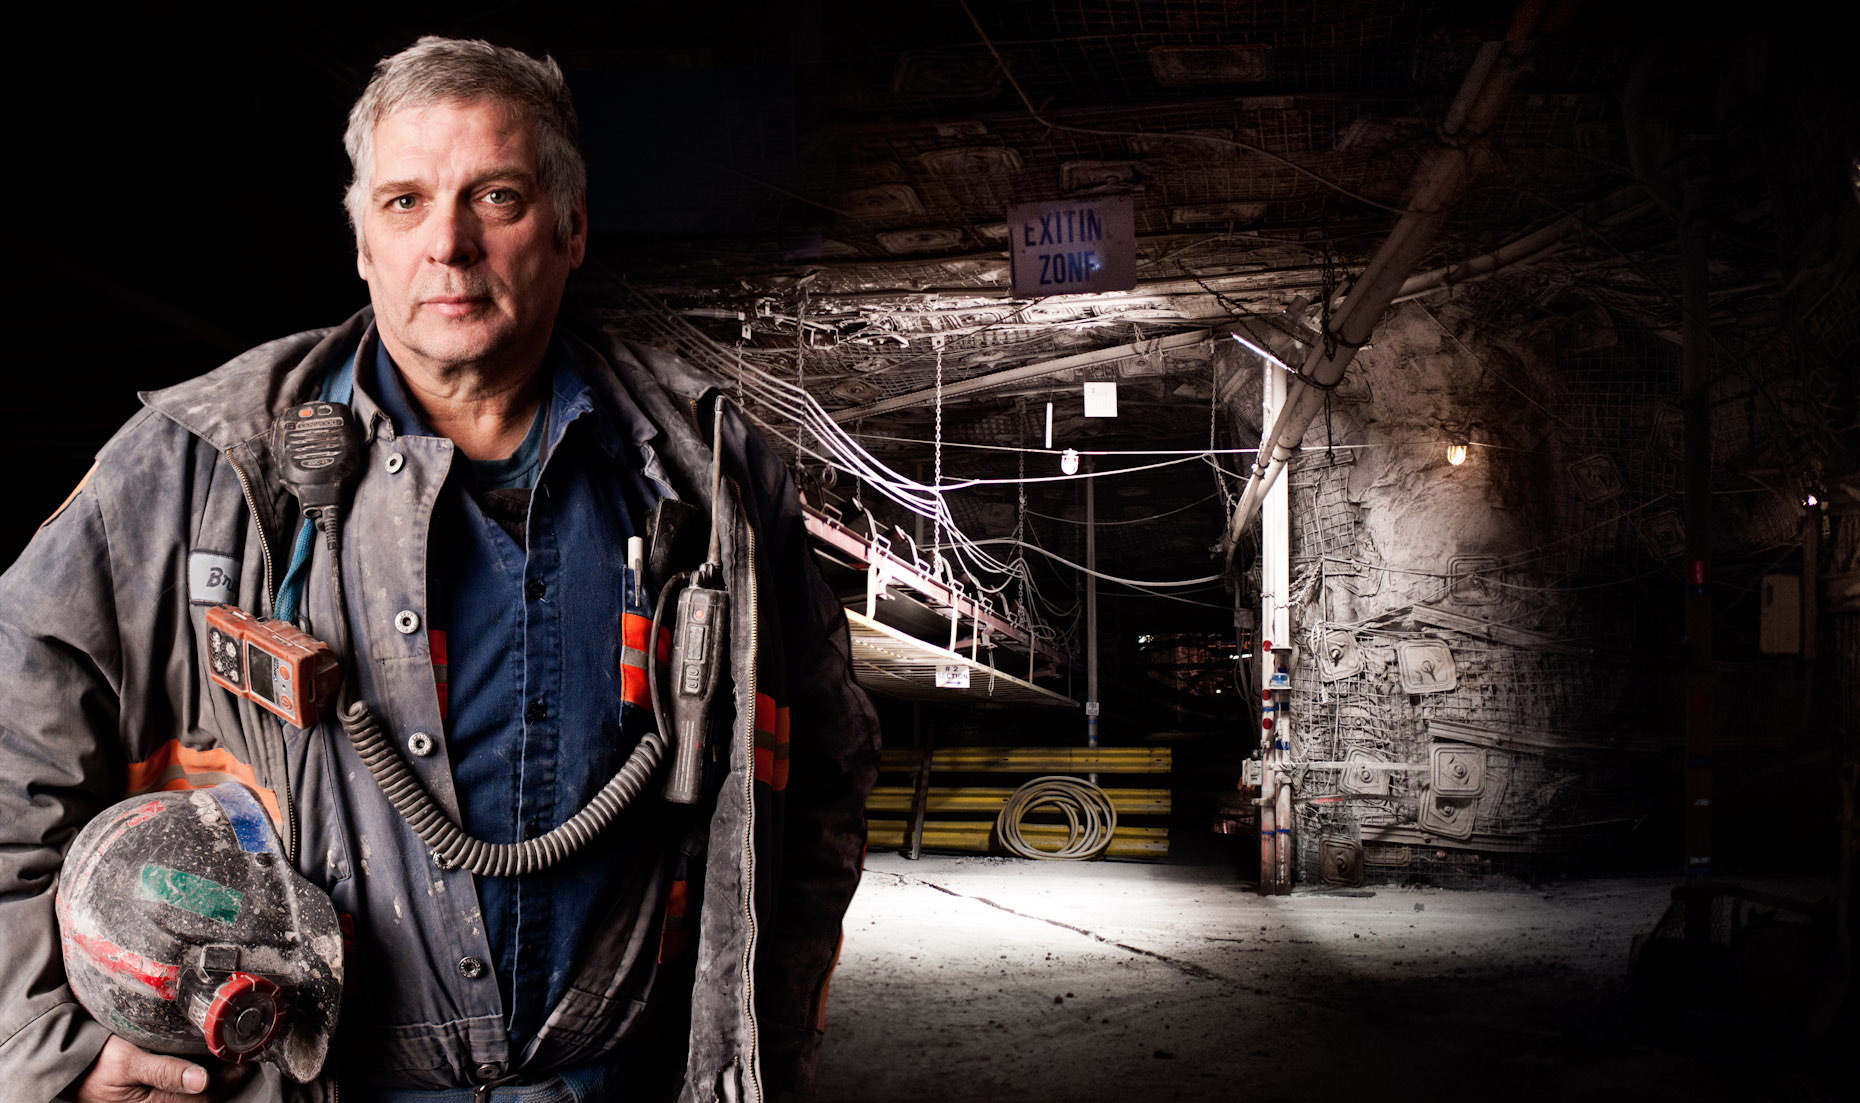 ©Robb Scharetg - Alpha Natural Resources Miner inside Deep Mine 41